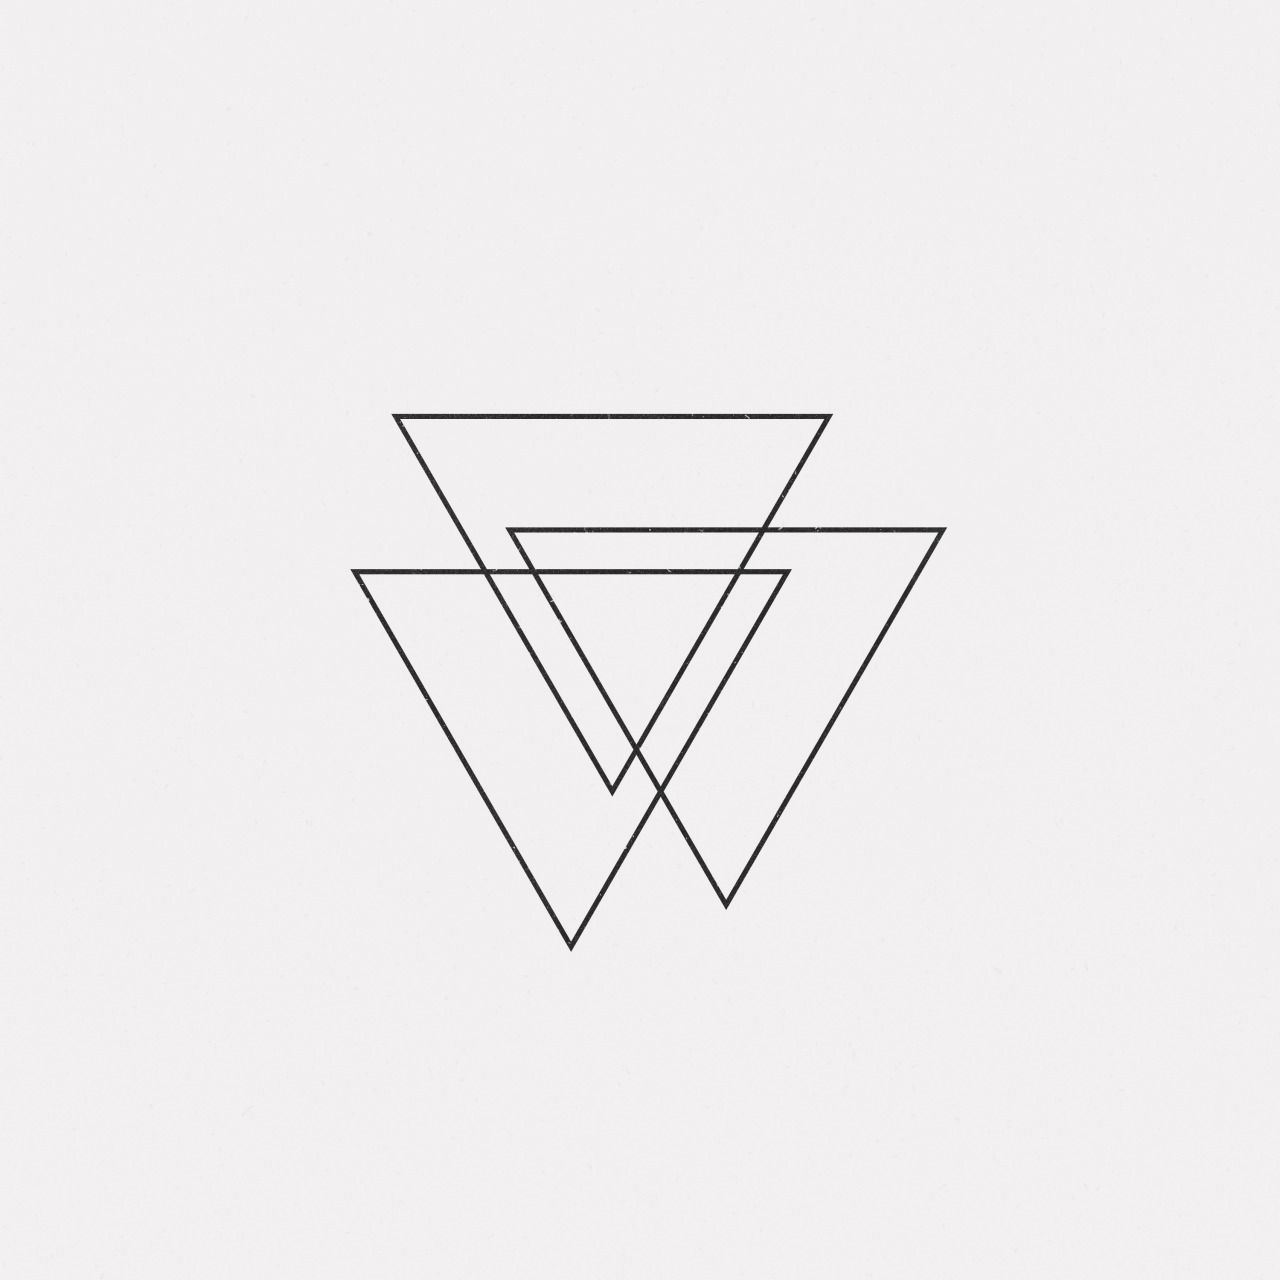 Triple Triangle Tattoo Design: Minimalist Ink; Use Diff Line Weights/tones